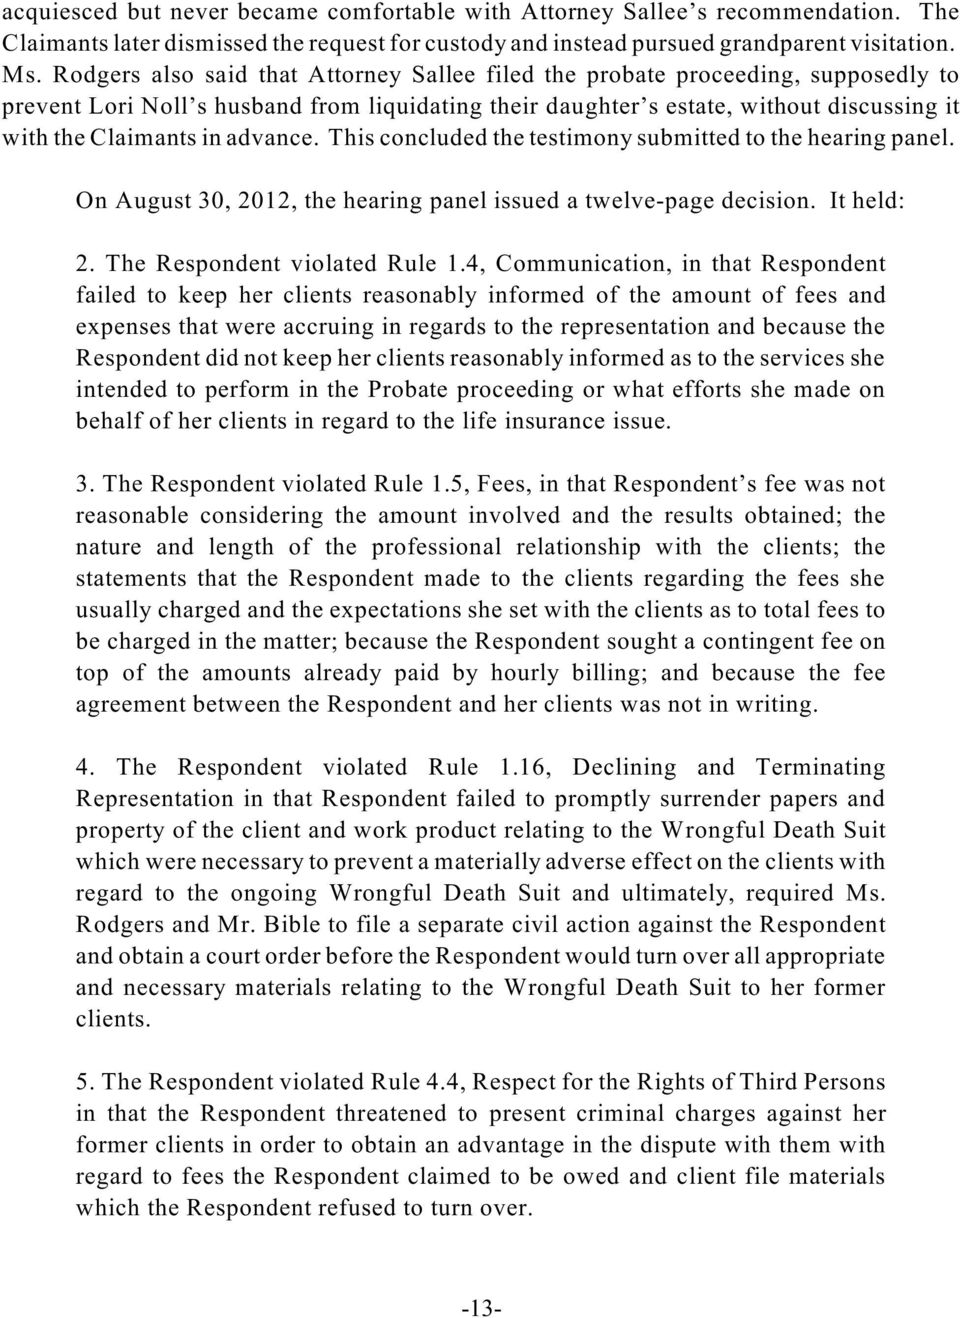 advance. This concluded the testimony submitted to the hearing panel. On August 30, 2012, the hearing panel issued a twelve-page decision. It held: 2. The Respondent violated Rule 1.